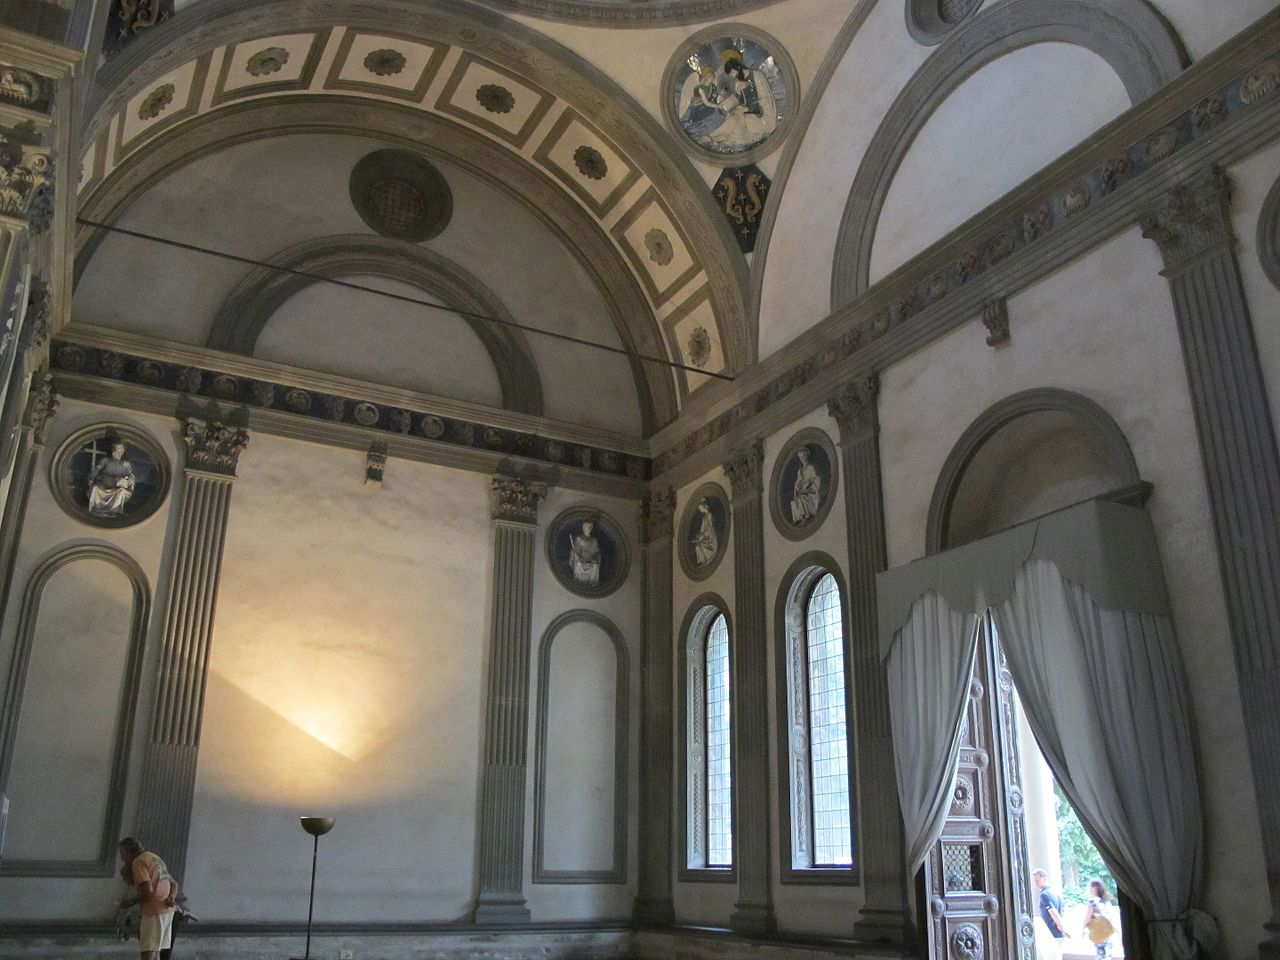 Interior of the Pazzi Chapel in Florence